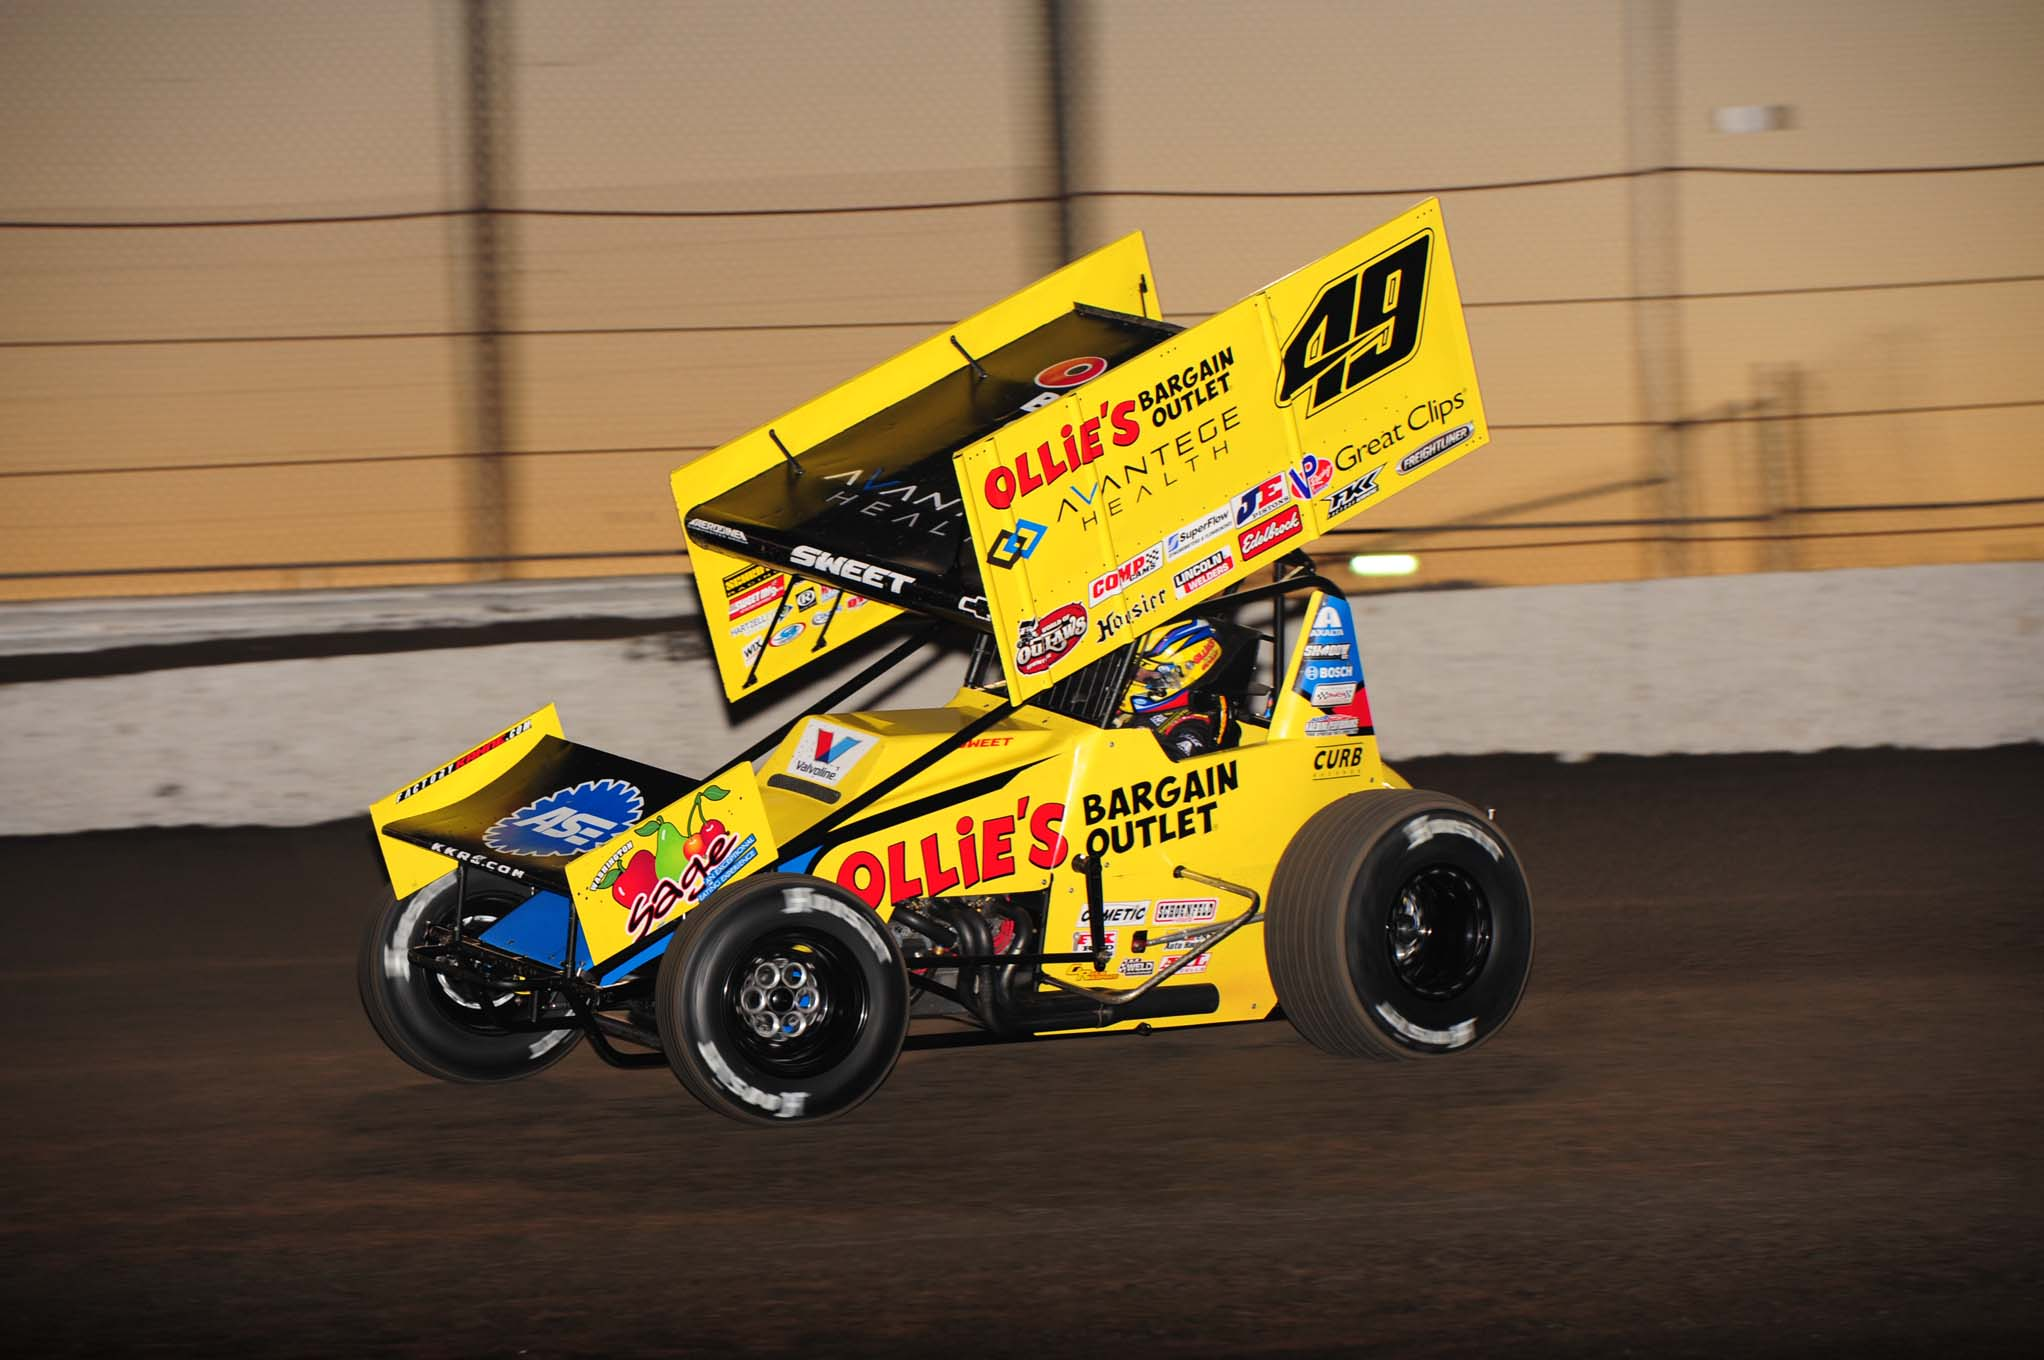 Brad Sweet wheels his Outlaw as the sun sets in the background.